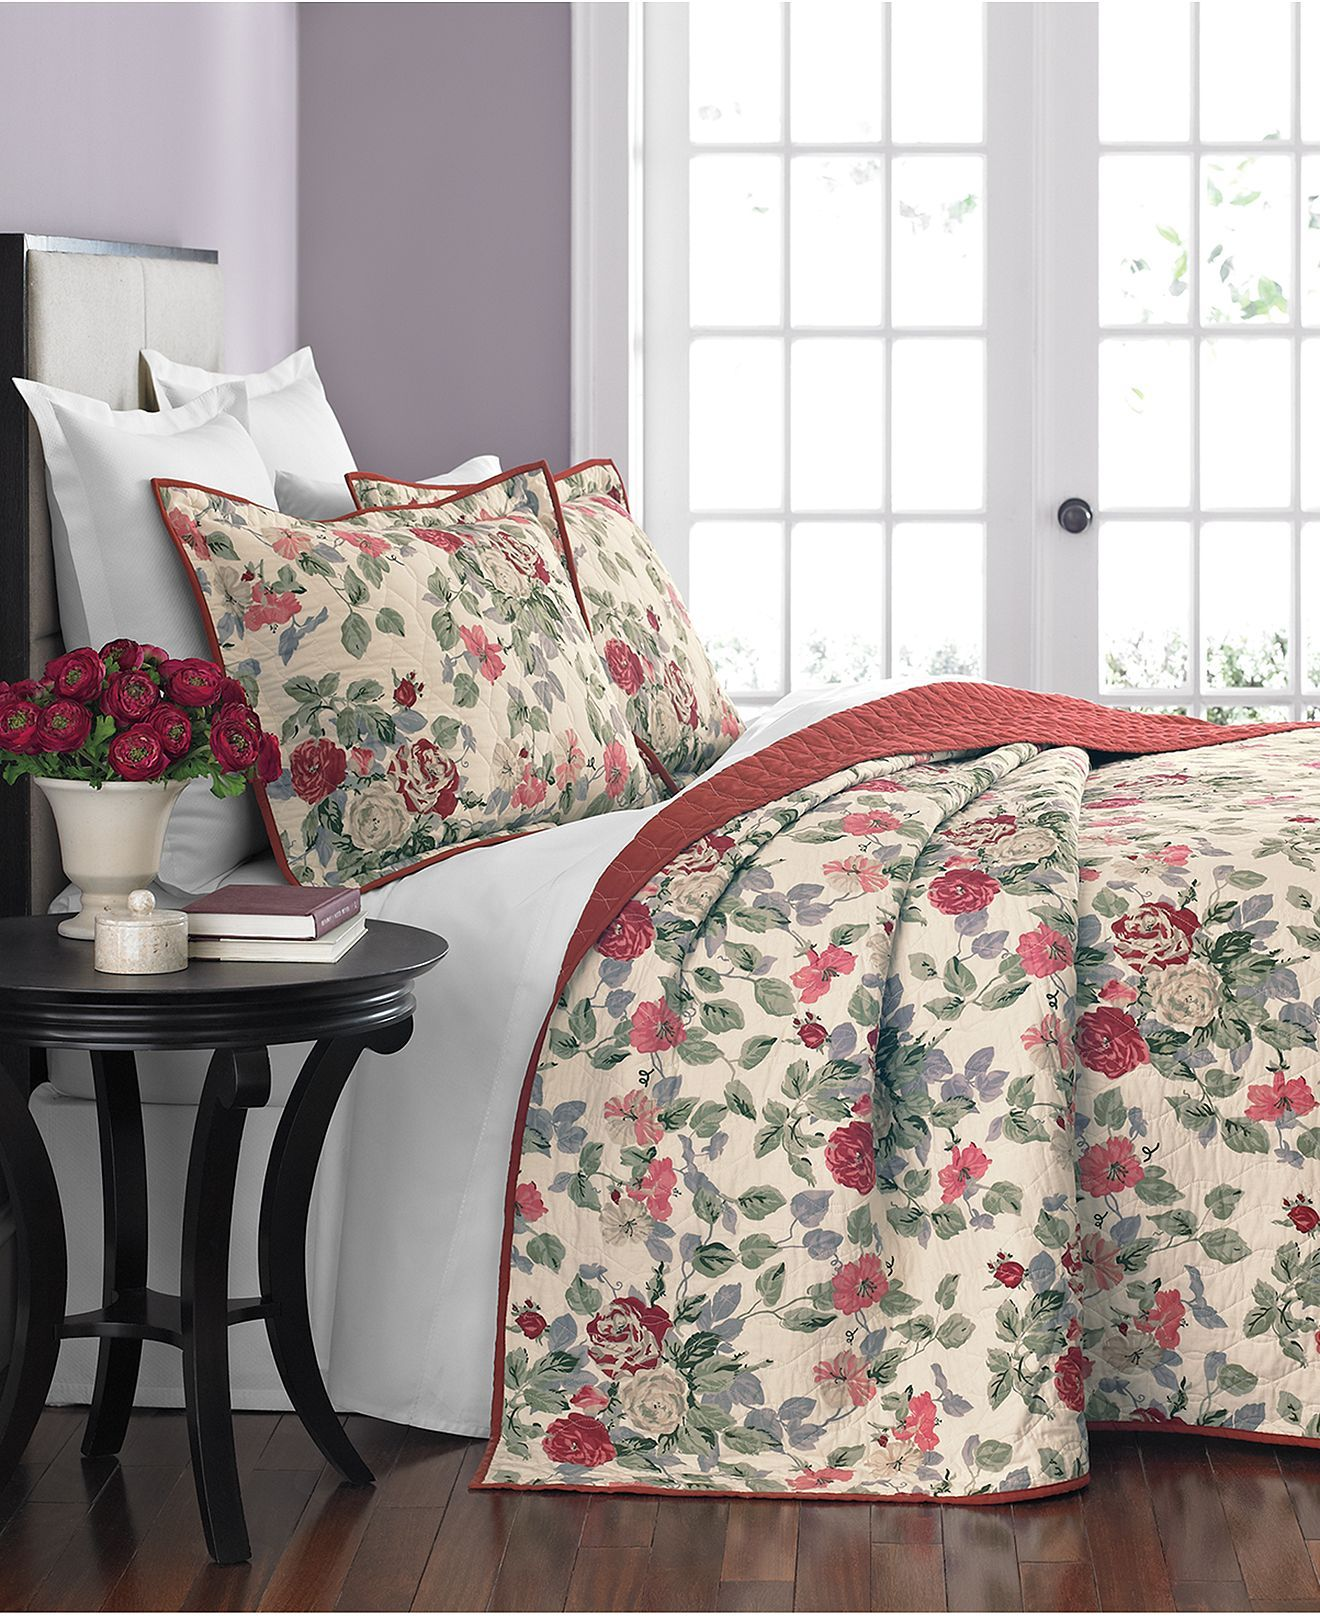 Martha Stewart Collection | Rose bedroom, Home decor ...